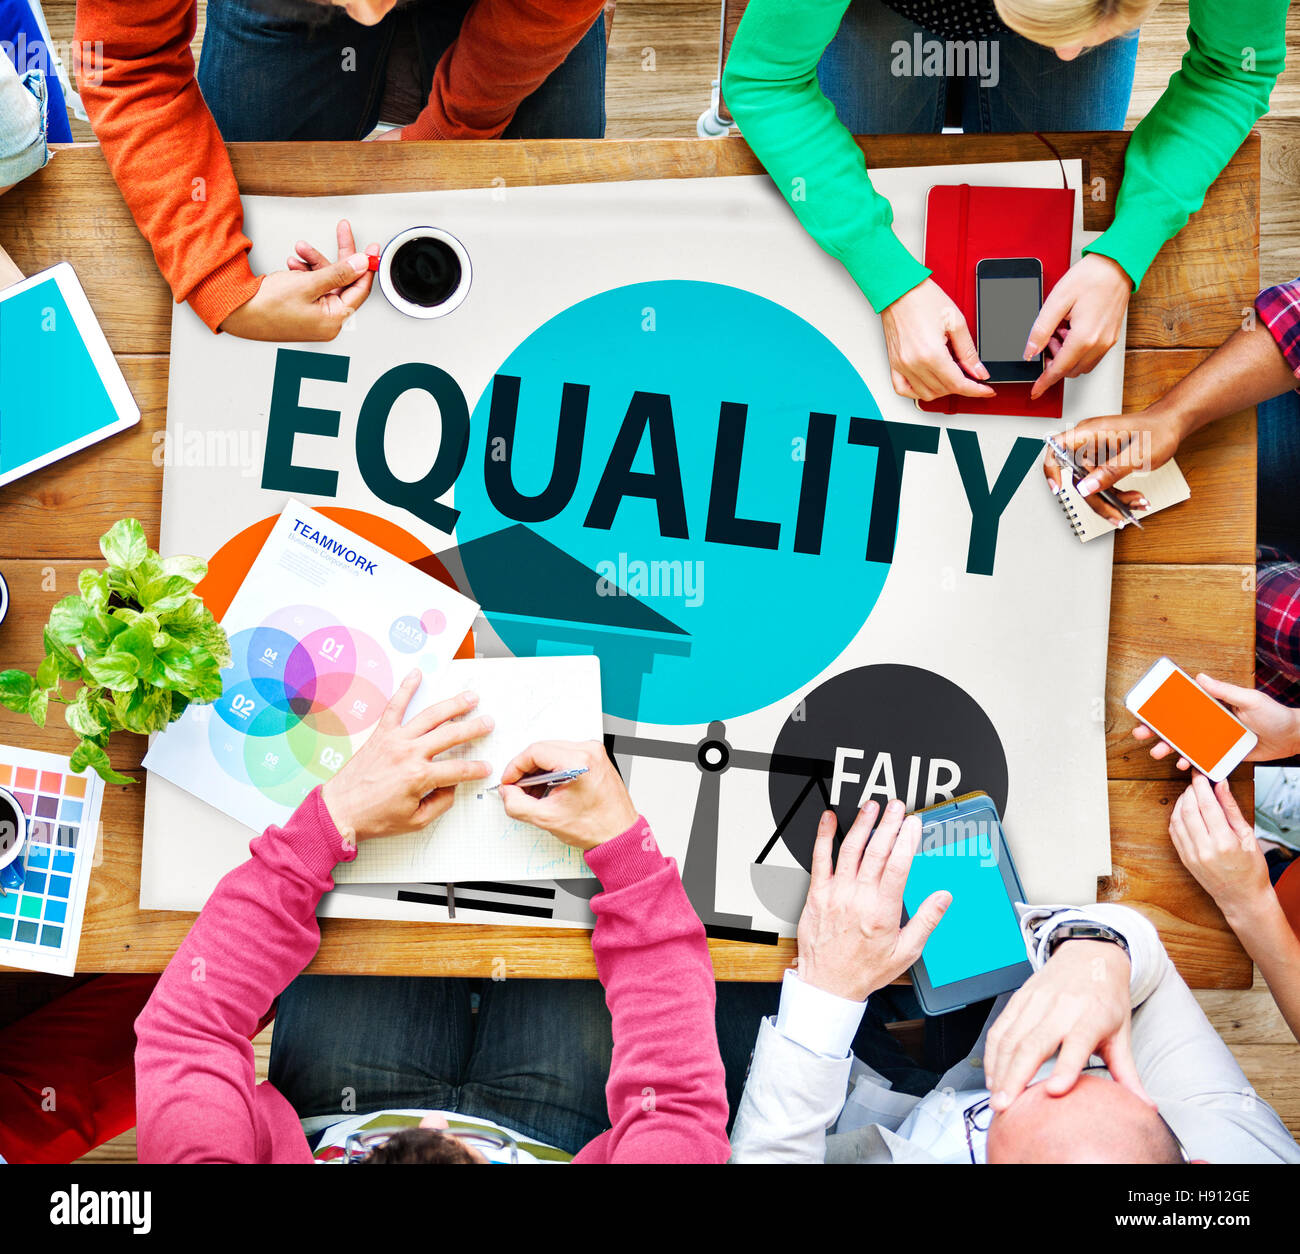 Equality Parity Balance Justice Fair Concept - Stock Image